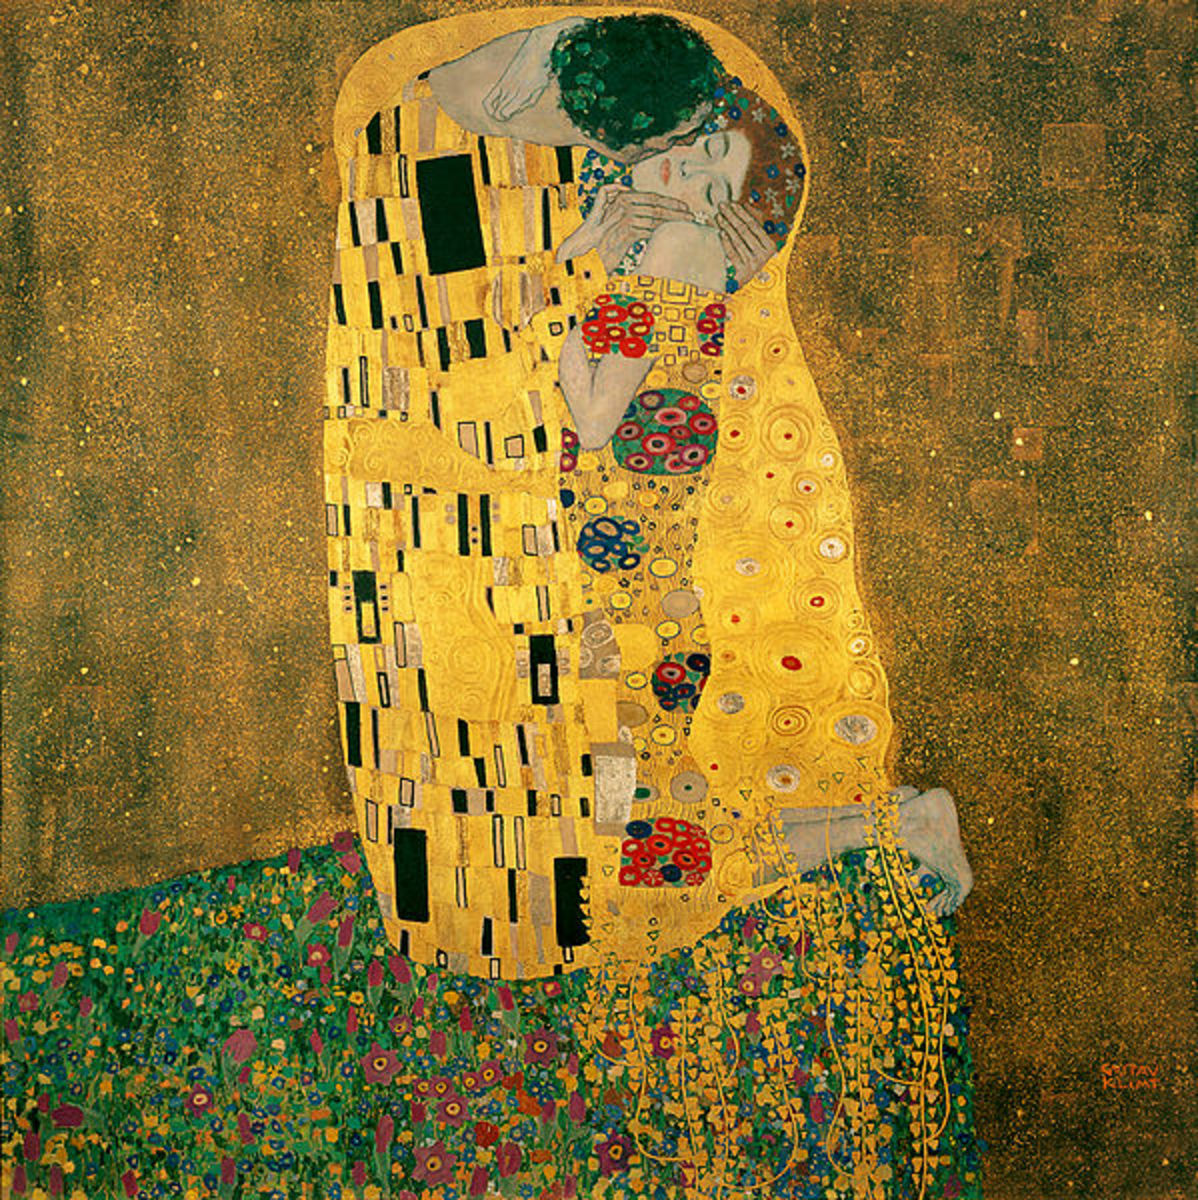 Gustav Klimt's most famous painting - The Kiss - incorporates the use of gold leaf in its design. It is currently on display in the Belvedere Art Gallery in Austria.